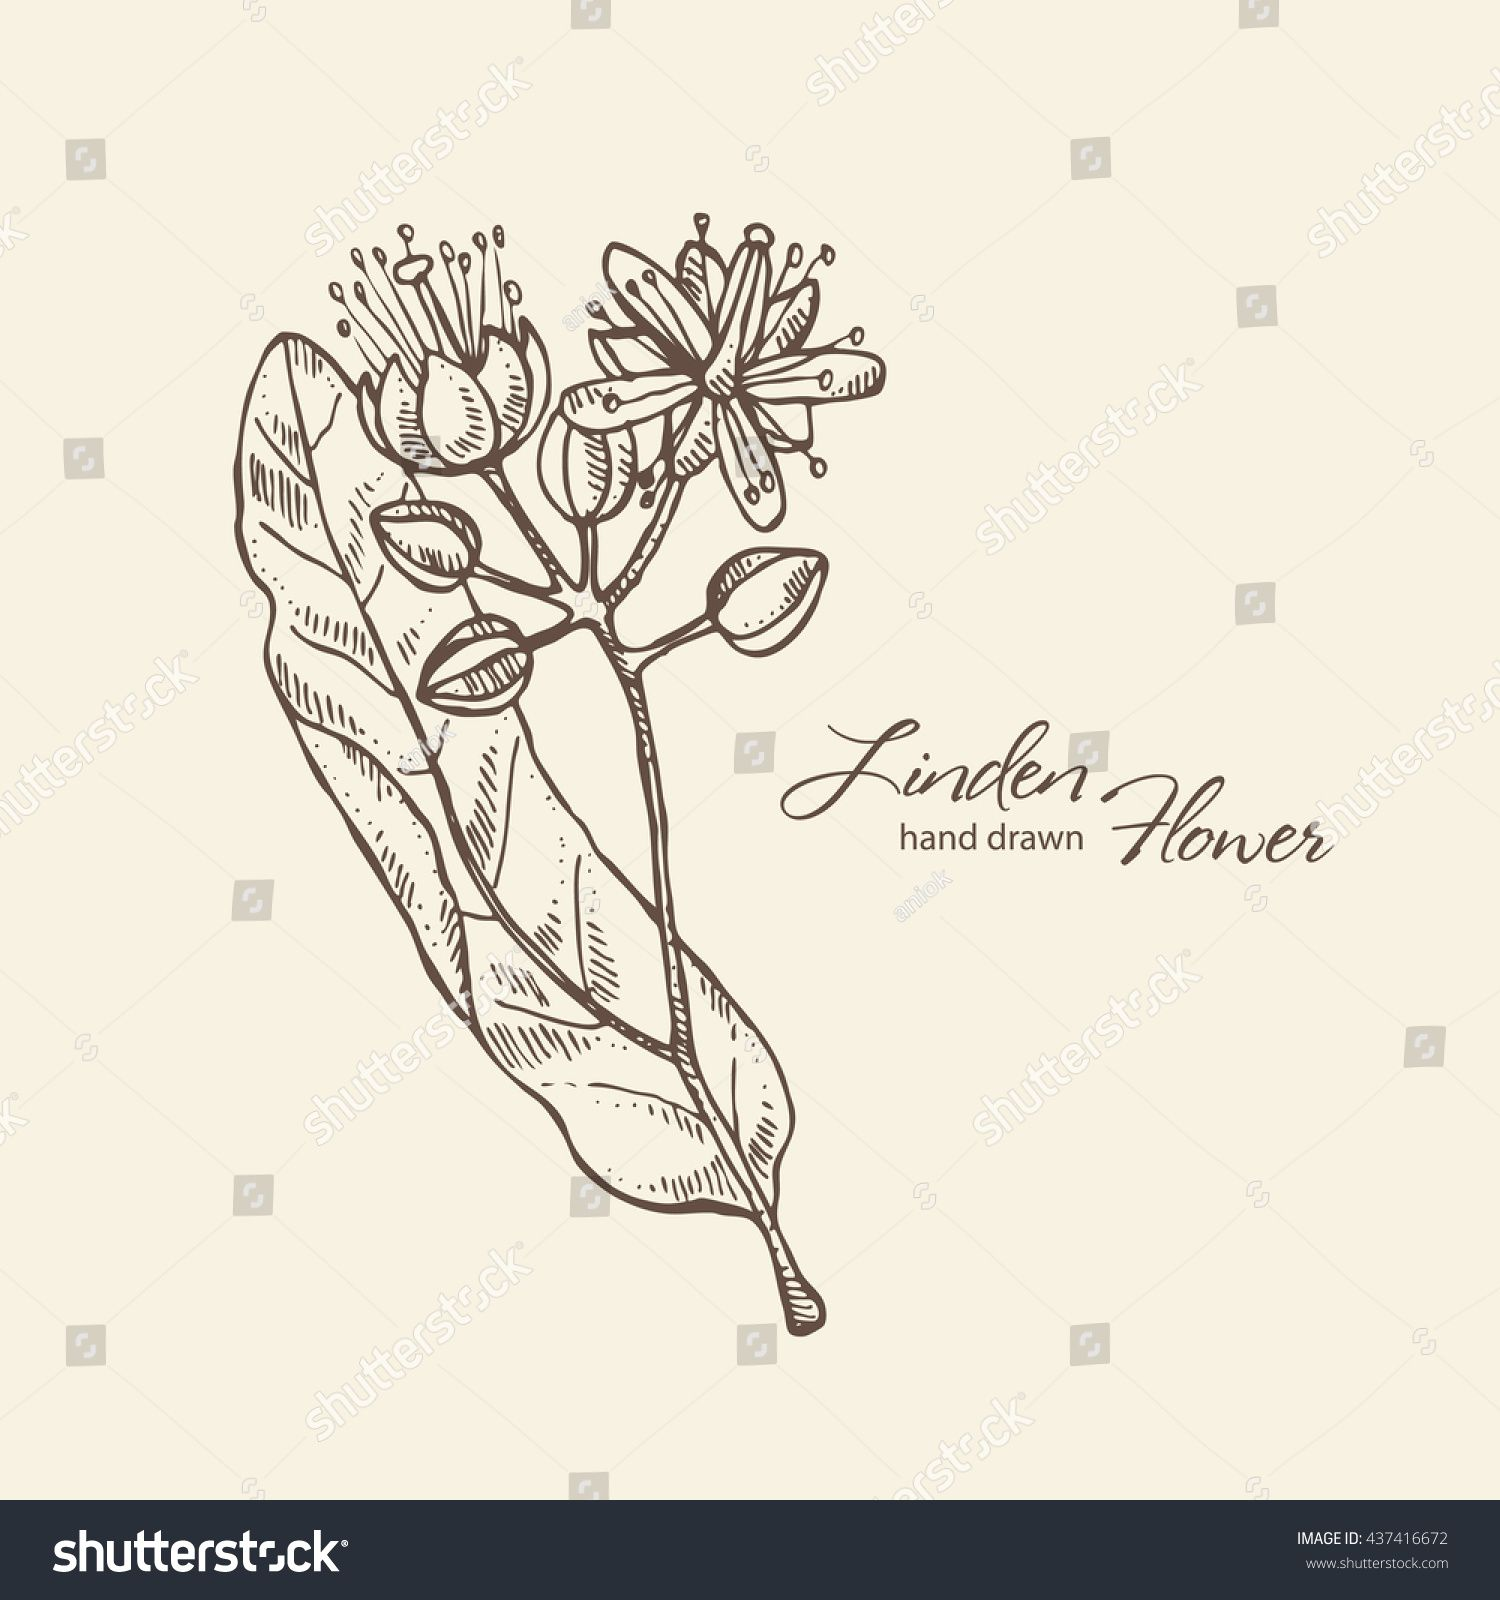 Background With Linden Flower Hand Drawn How To Draw Hands